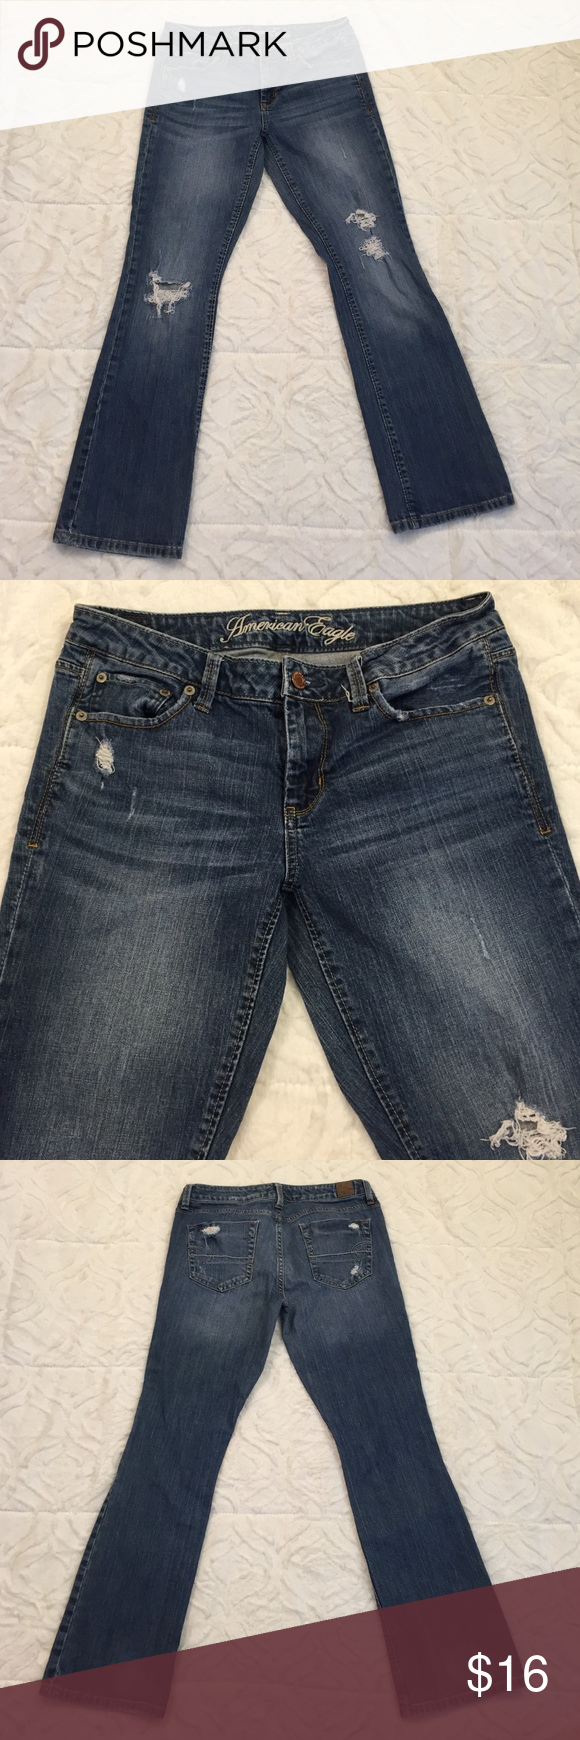 American Eagle Distressed Blue Jeans Distressed jeans in great condition! American Eagle Outfitters Jeans